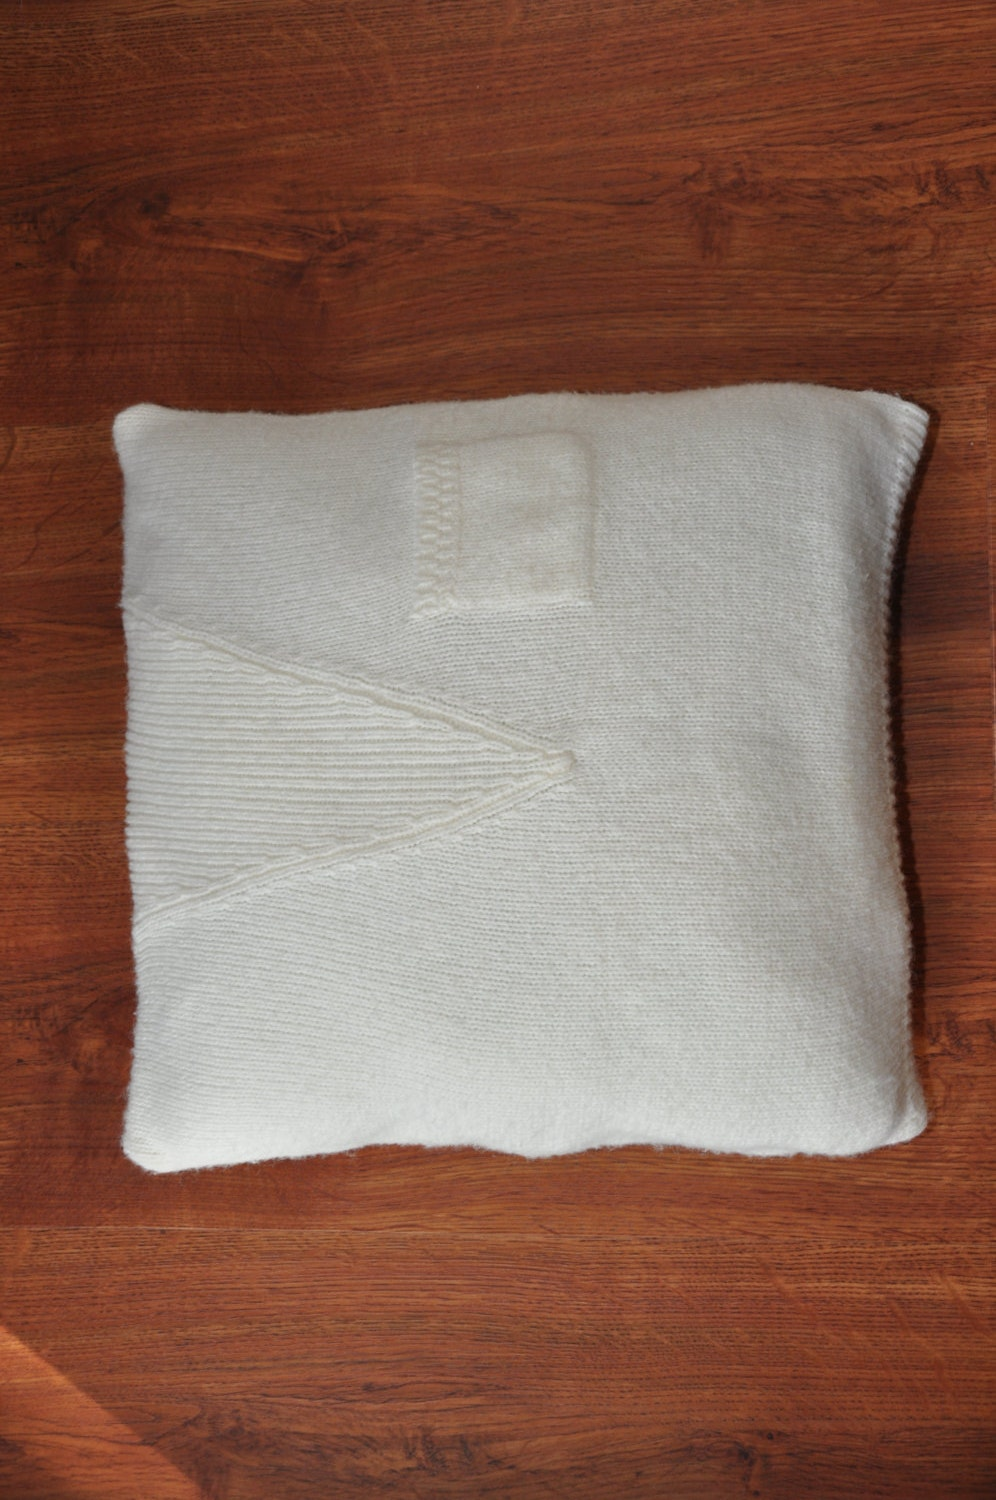 Decorative Pillows Ivory : 22in ivory throw pillow / ribbed knit decorative pillow